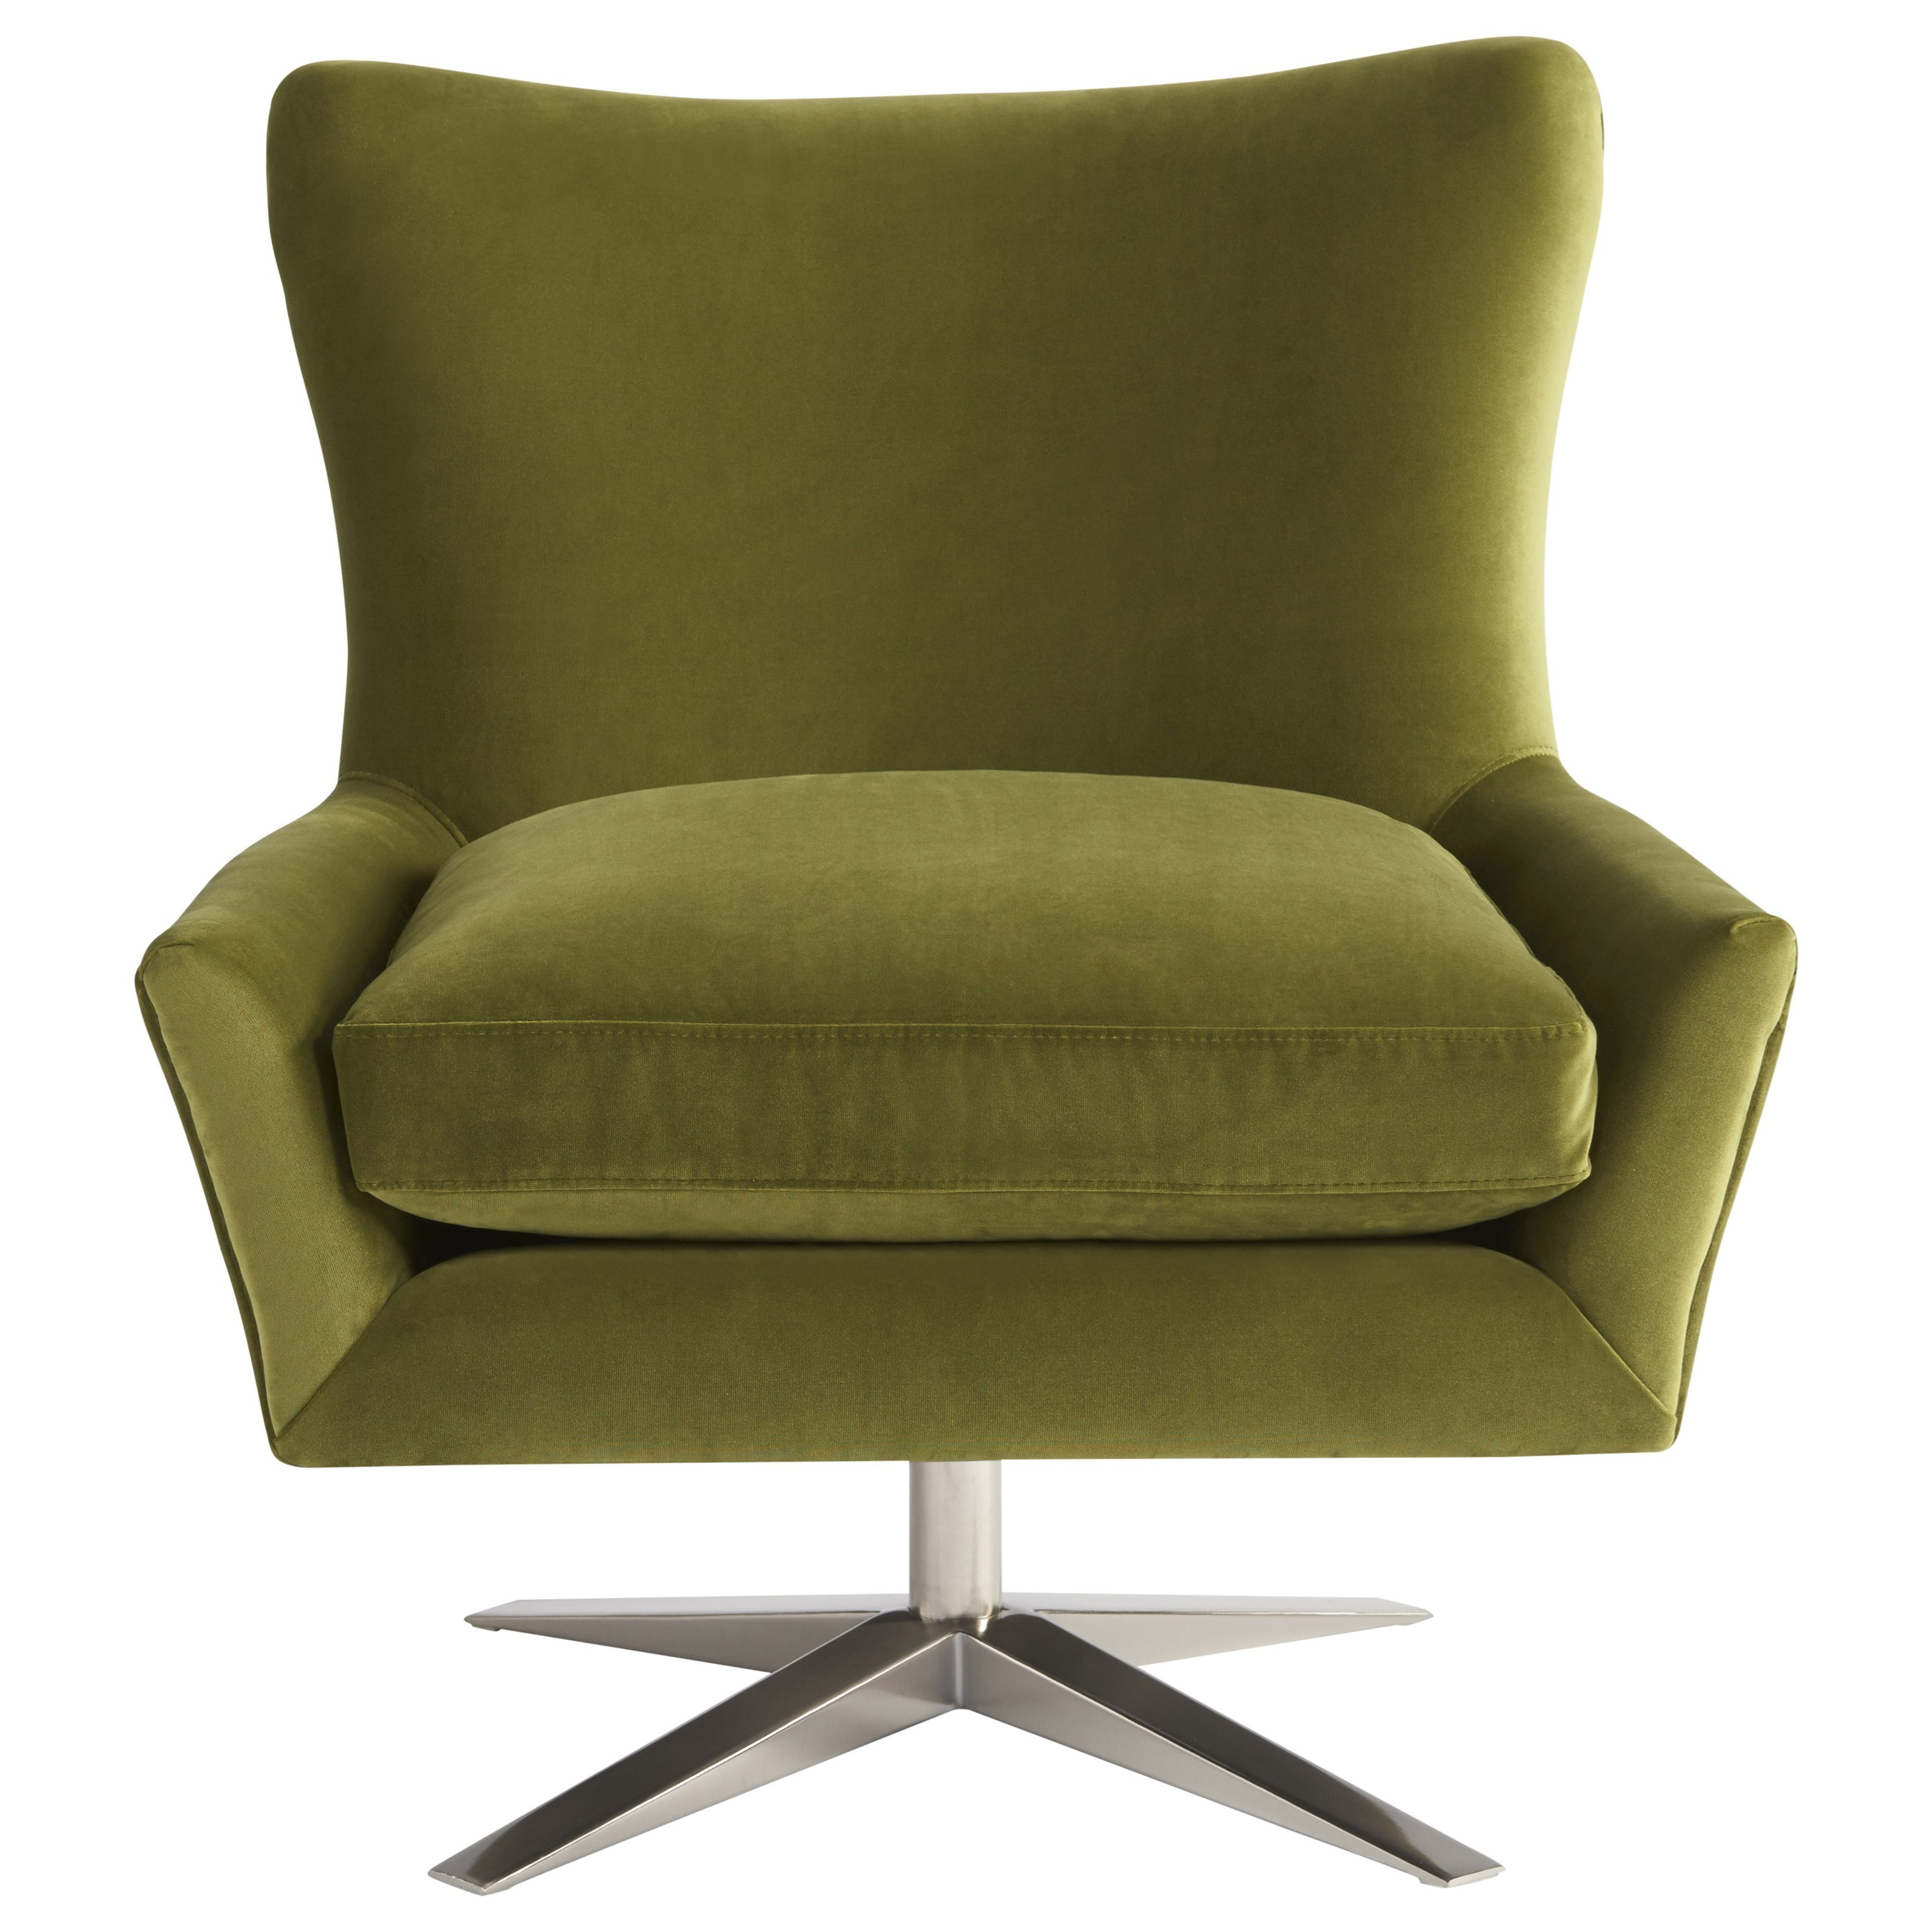 Accents Everette Accent Chair by Universal at Upper Room Home Furnishings